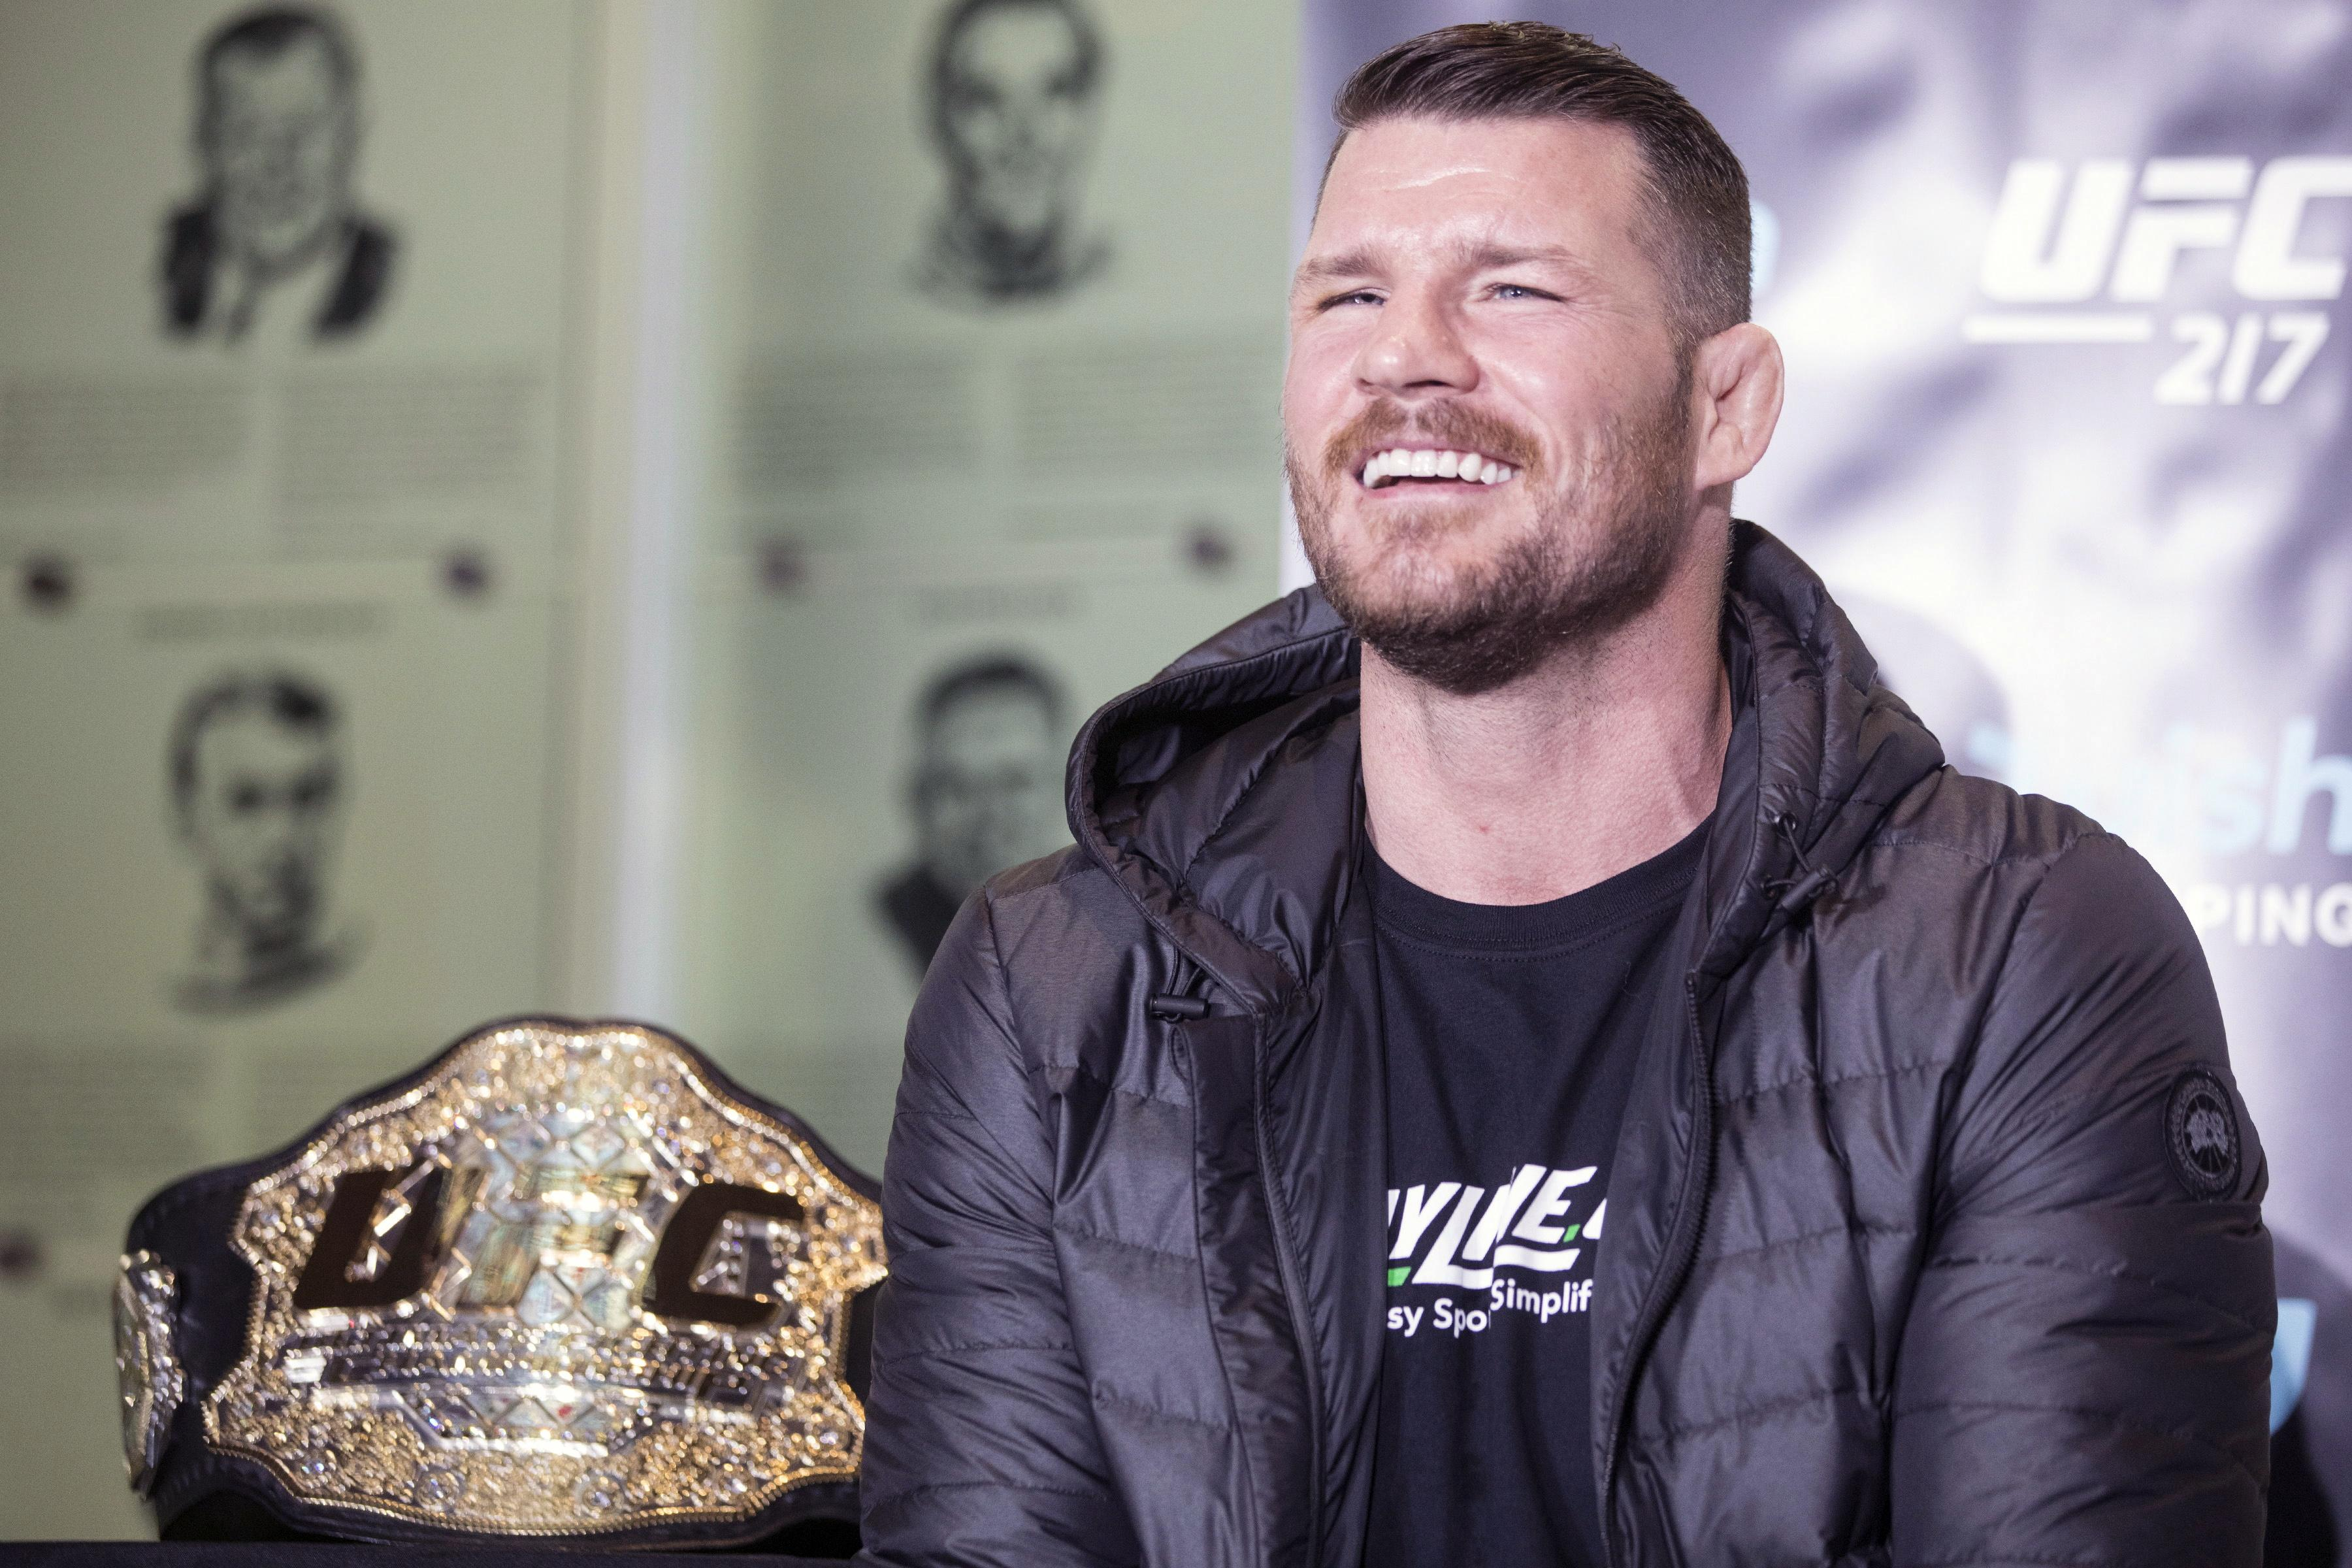 Bisping is a long time advocate for clean sports